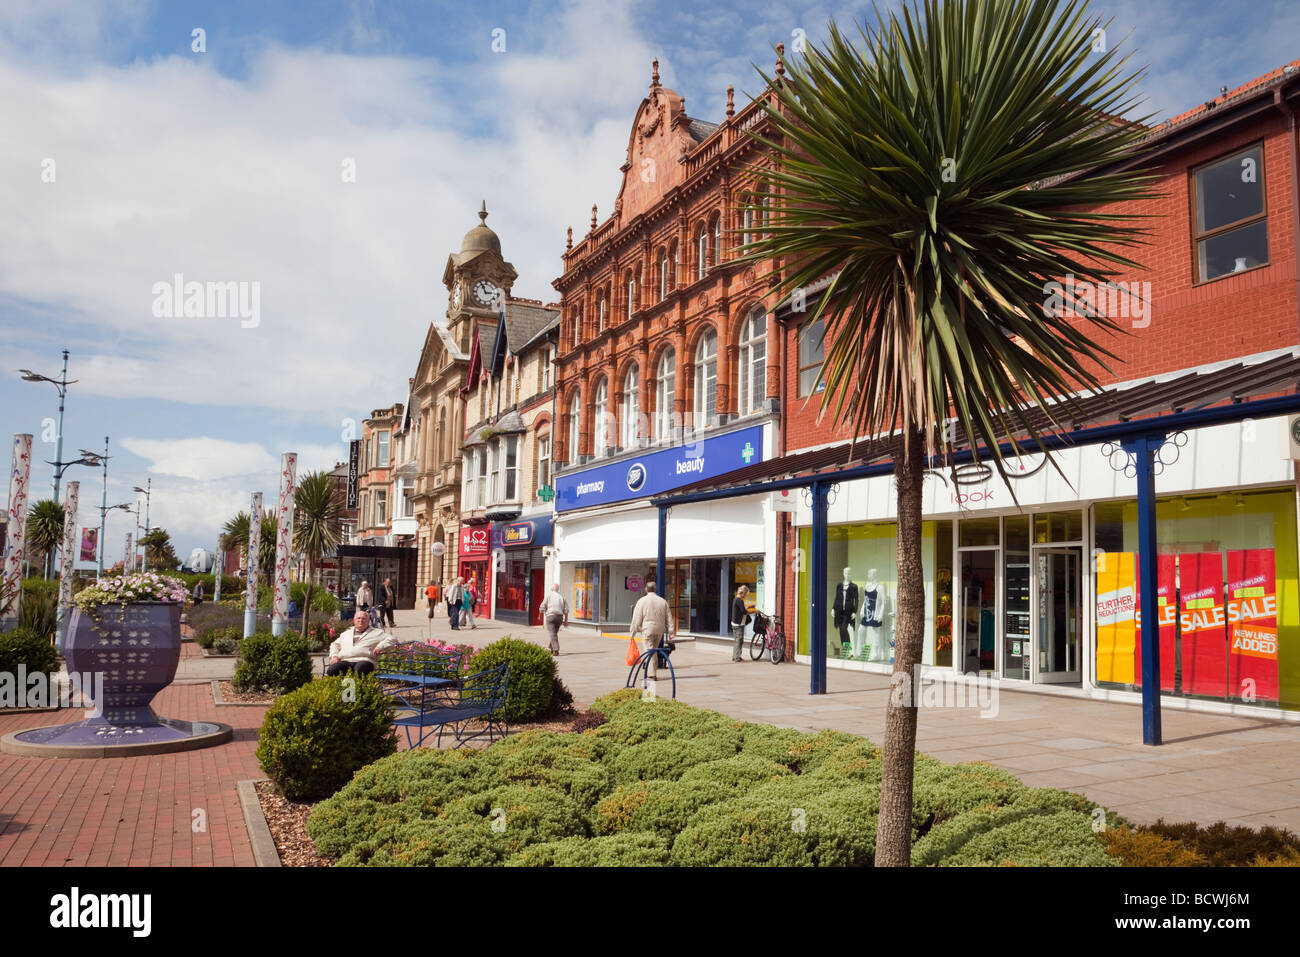 High street in St Annes Square in the town centre of Lytham St Annes Lancashire England UK - Stock Image